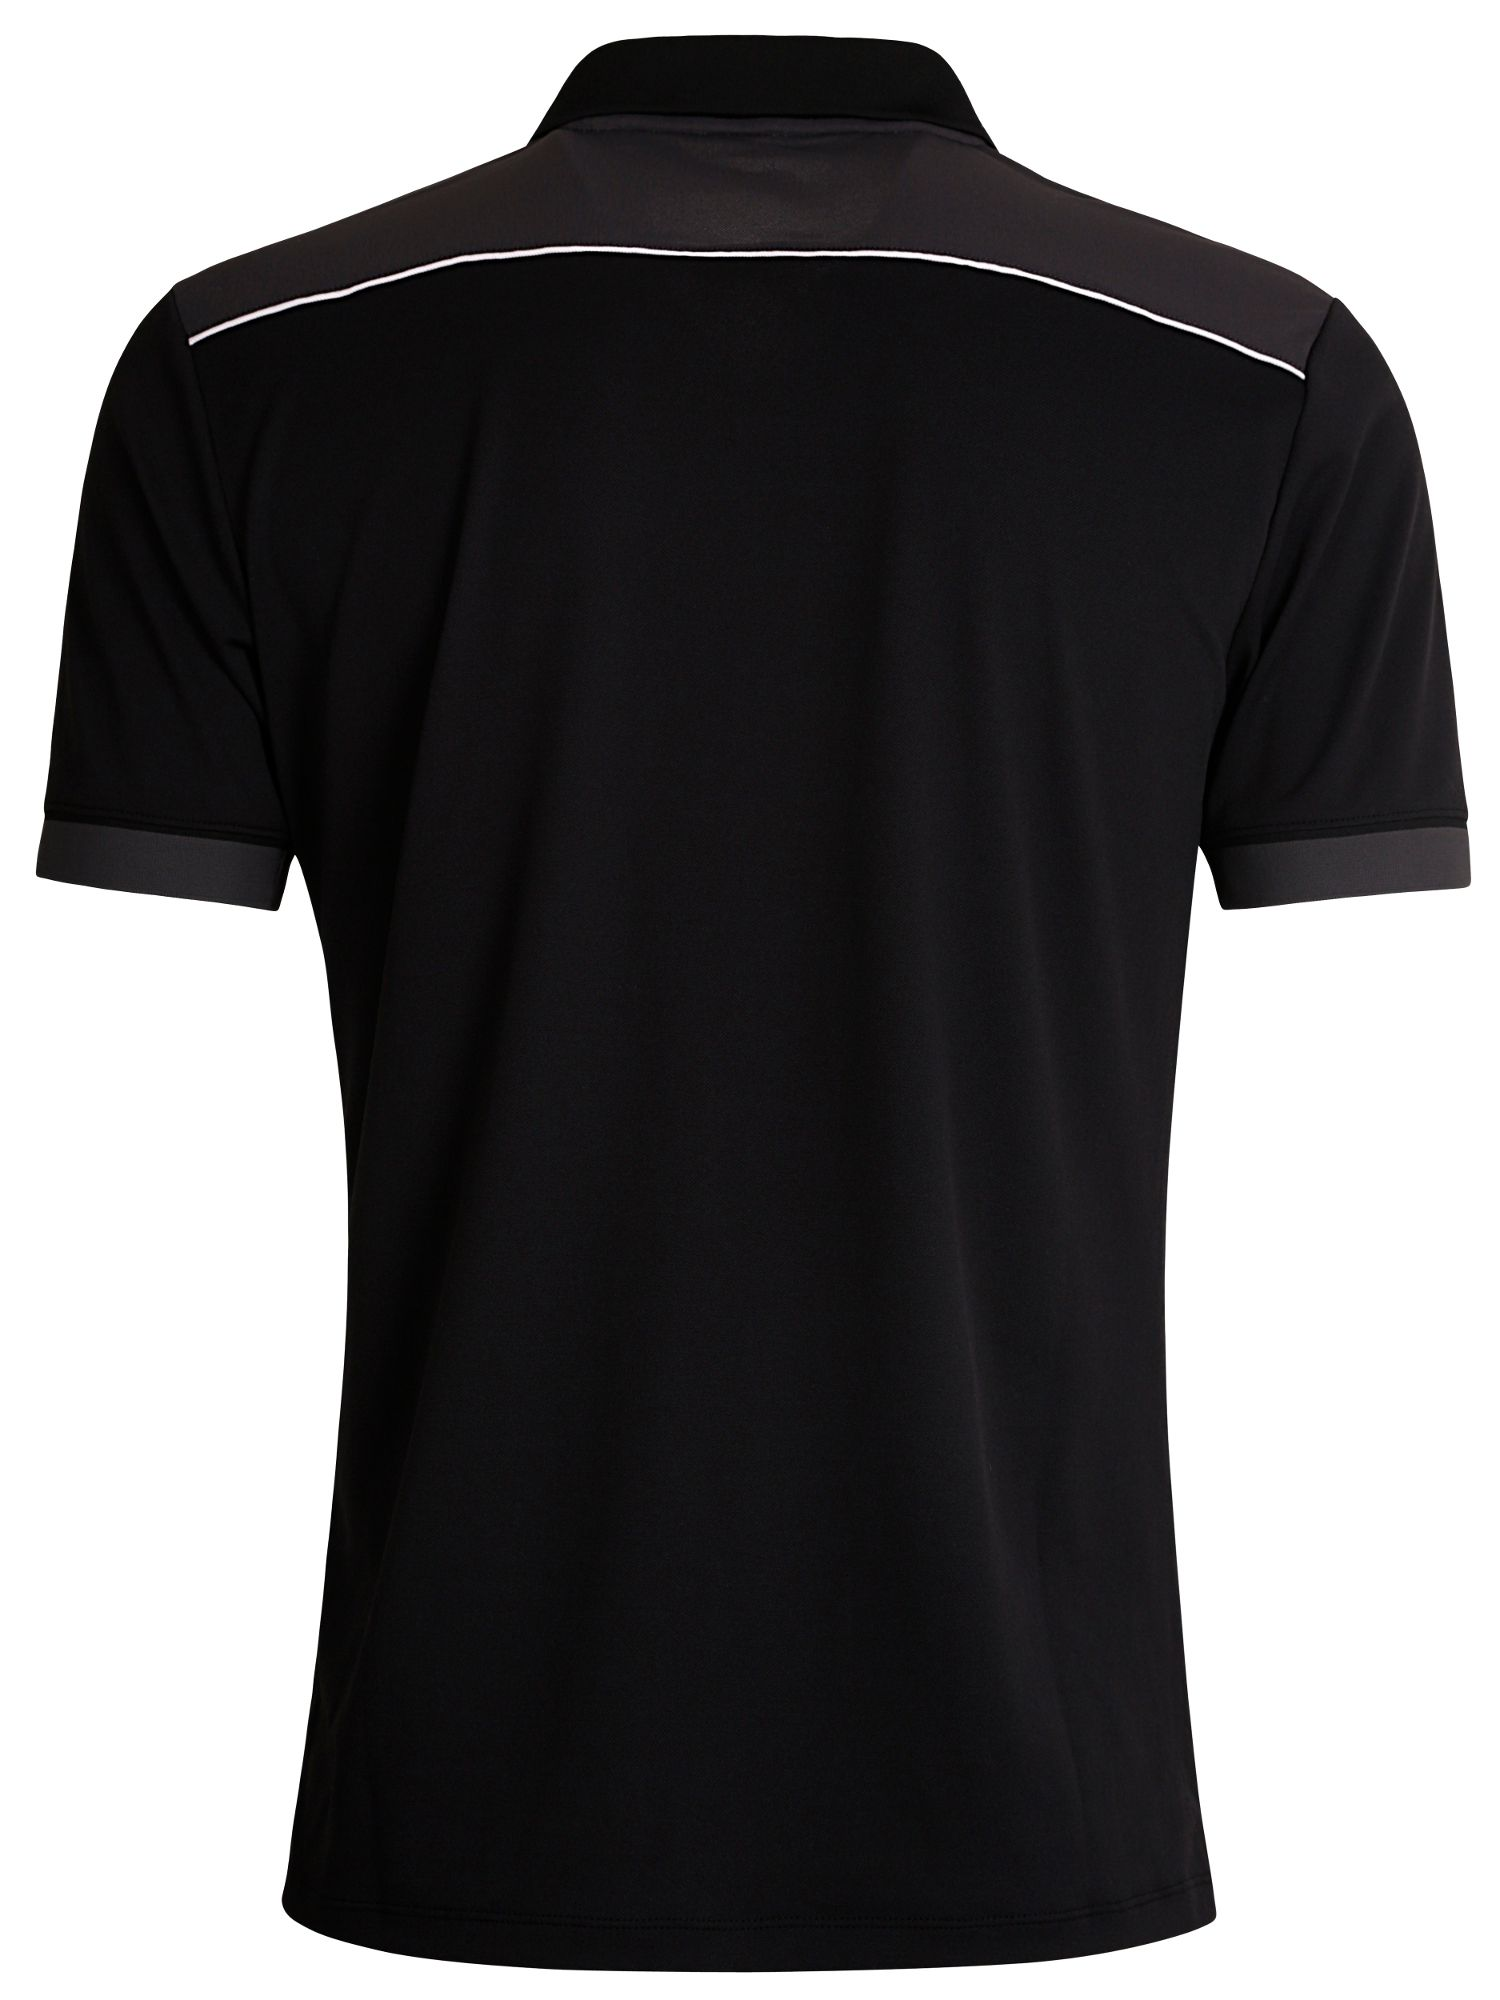 Ace tech polo shirt